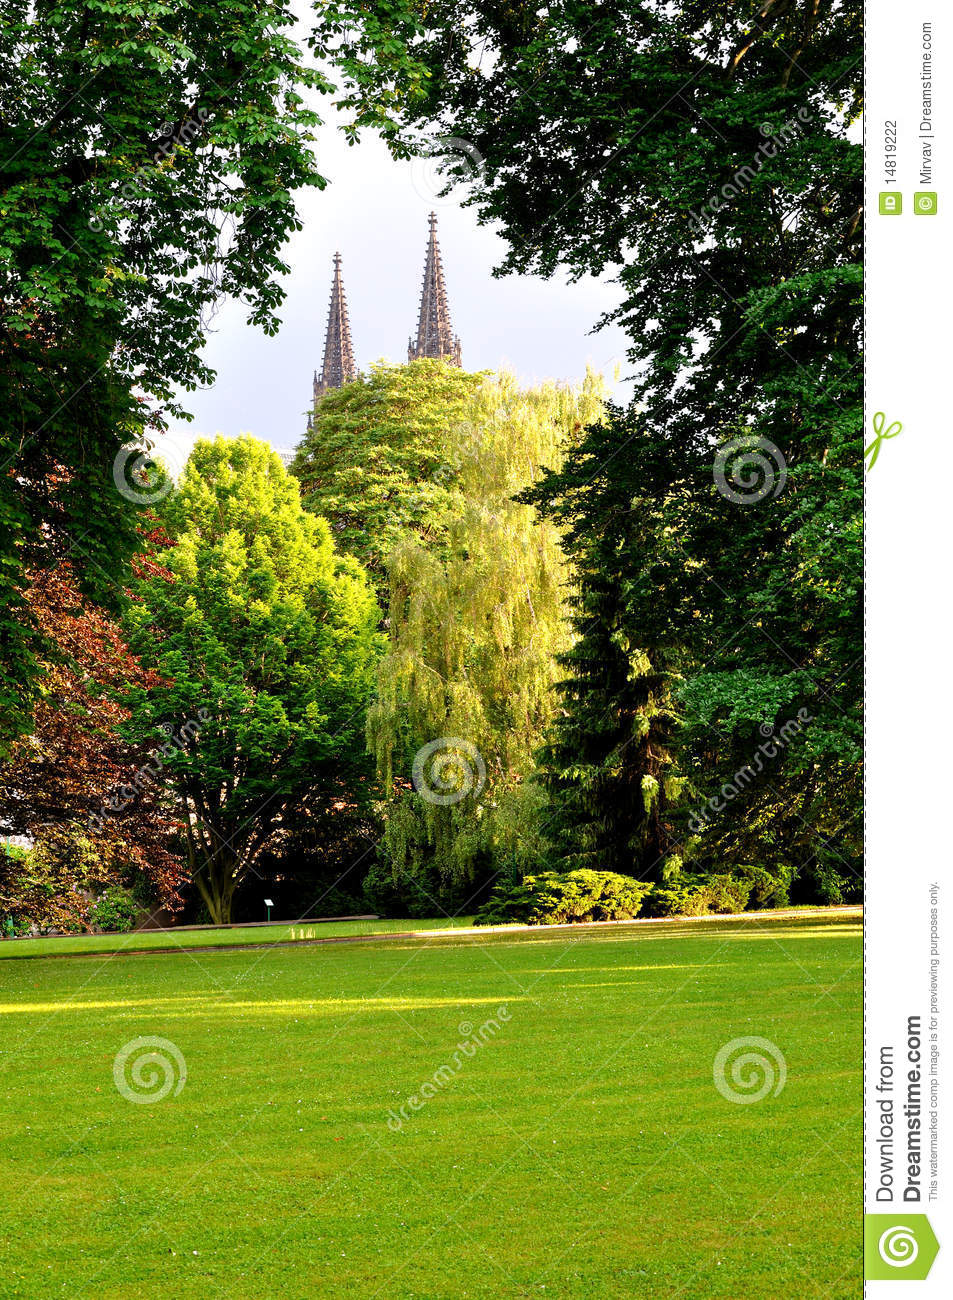 Jardin royal prague photographie stock image 14819222 for Jardin royal